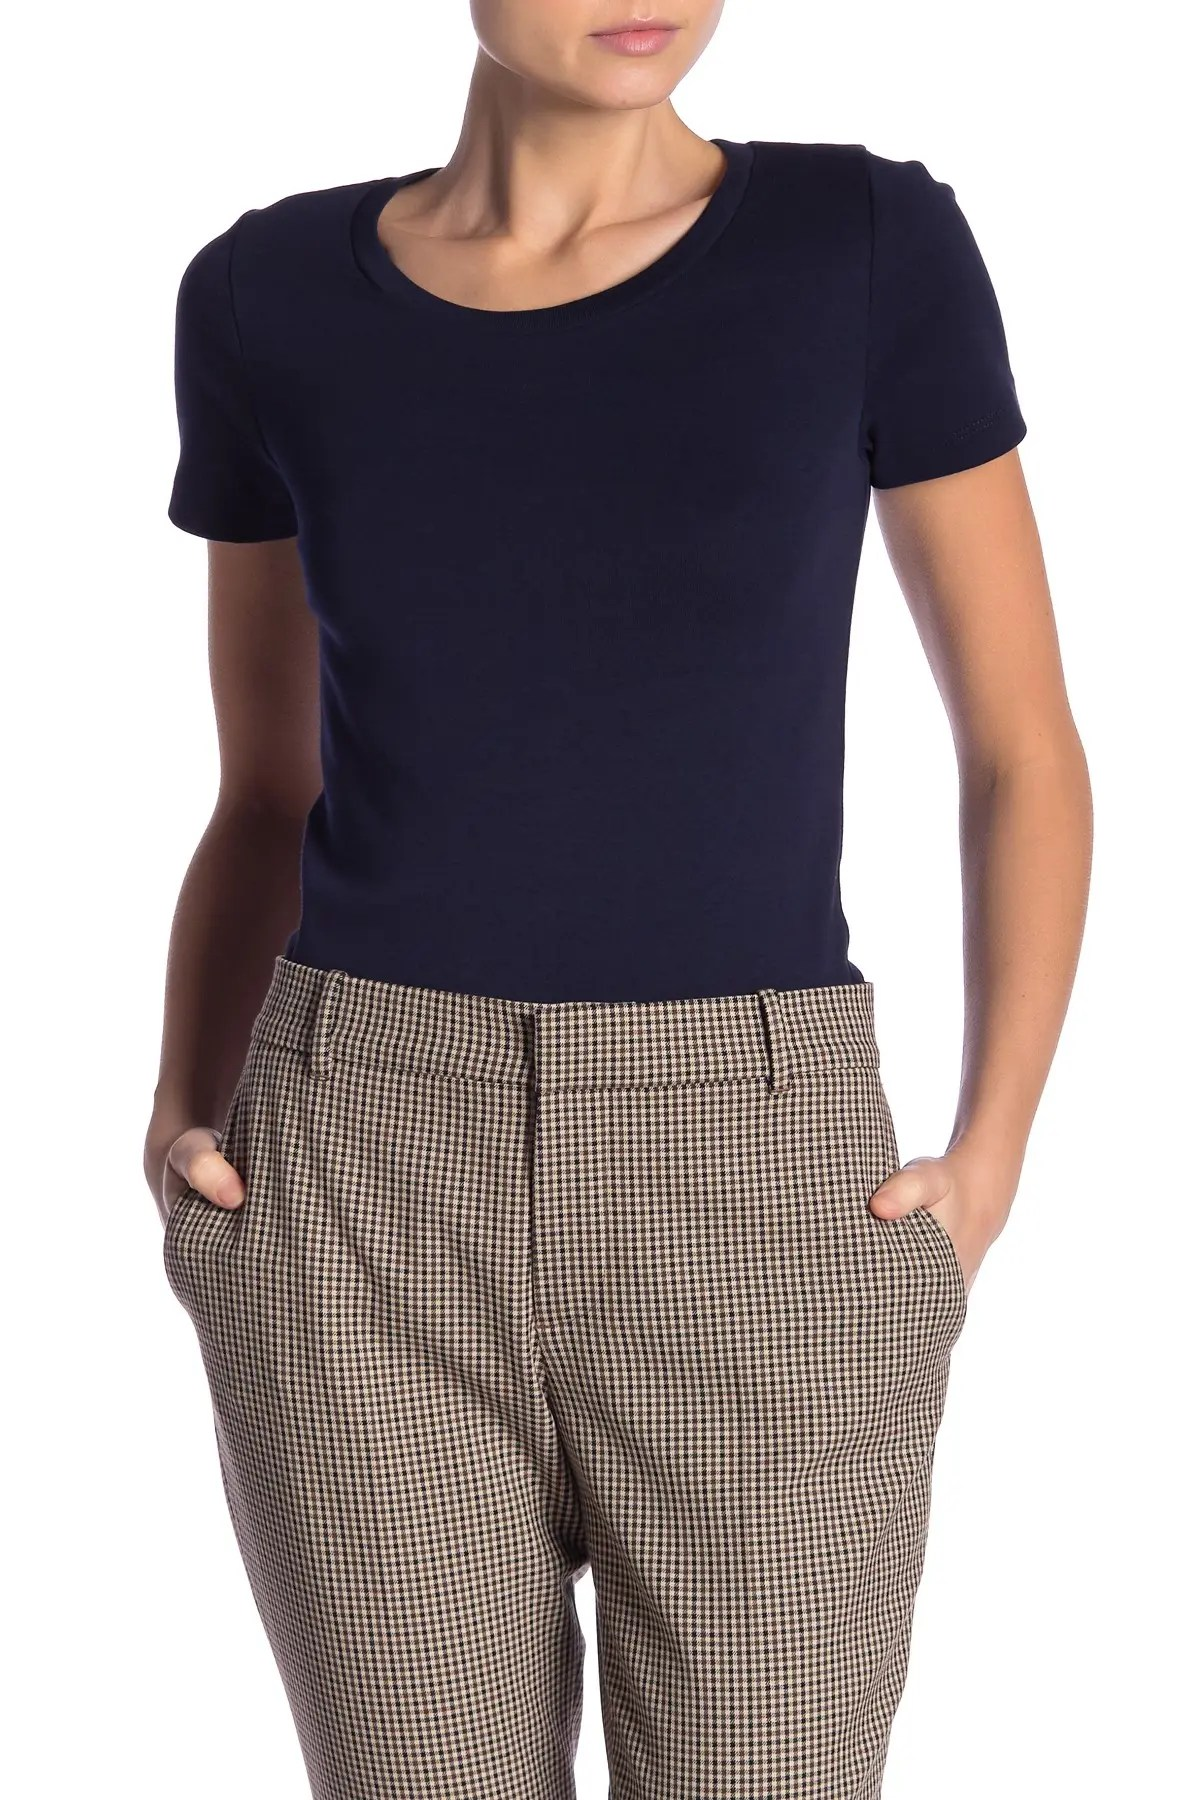 J Crew Perfect Fit Tee : perfect, Perfect, Short, Sleeve, T-Shirt, Nordstrom